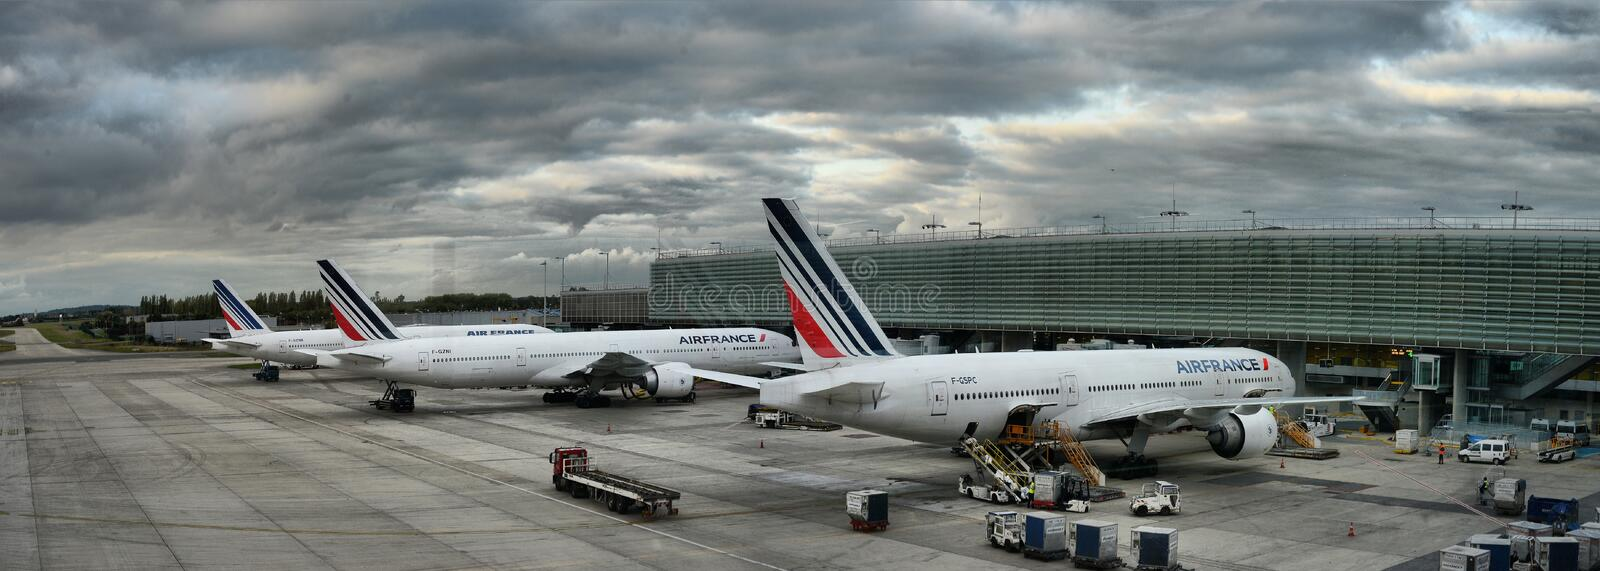 Air France airbus airplane parked on Paris airport people are boarding to the flight. France, Paris, Charles de Gaulle, October 10 2017 stock images